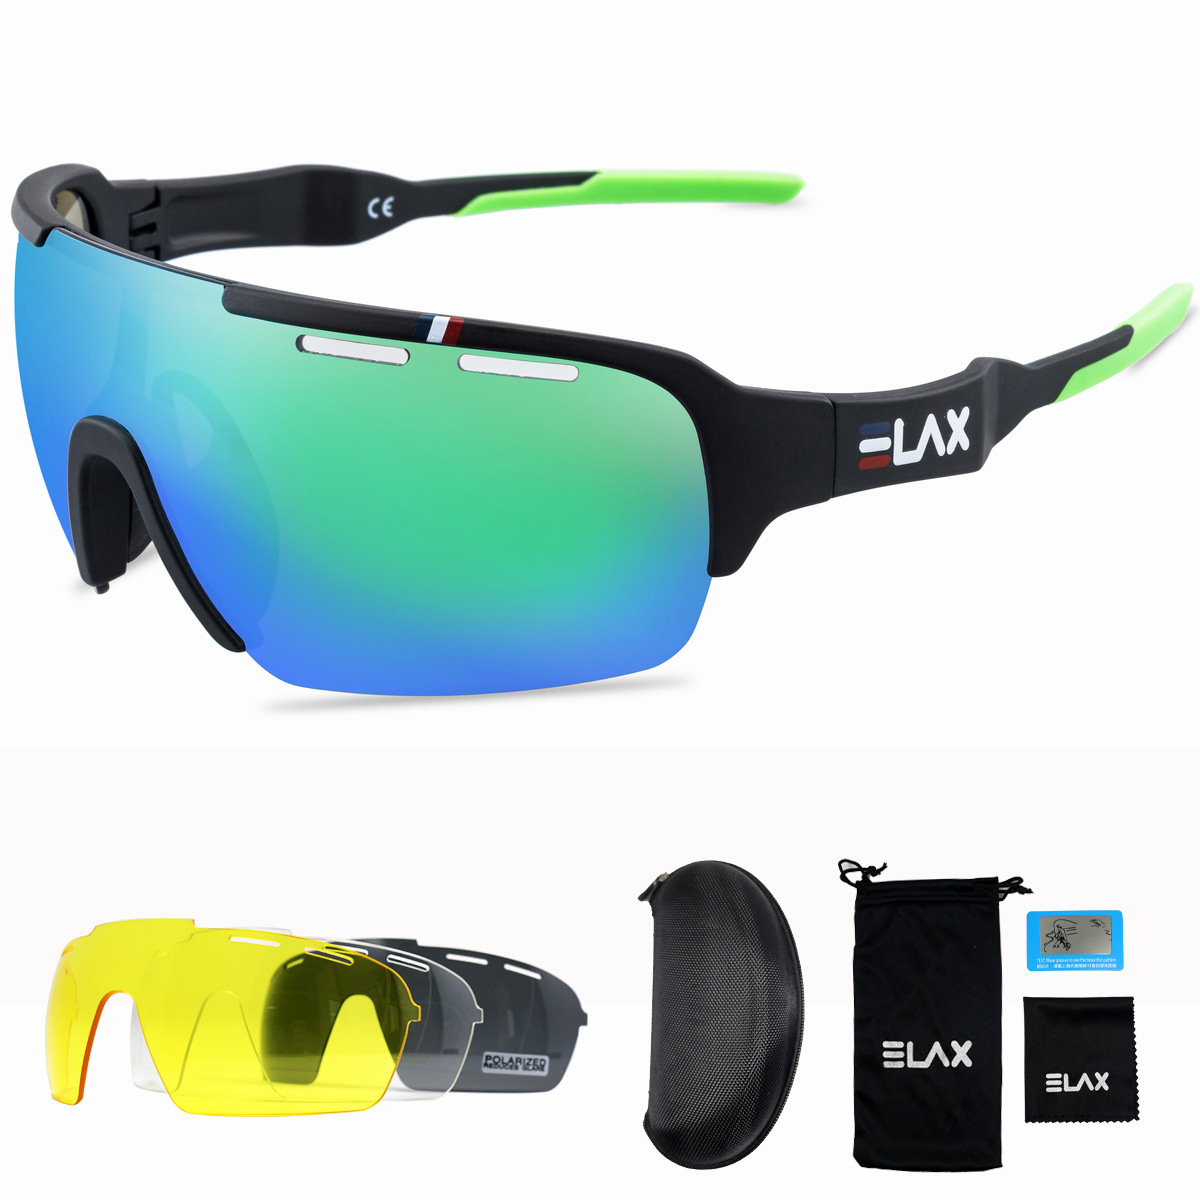 New 4 Lens Set Bicycle Goggles Men Women Outdoor Cycle Glasses Poc Crave Mountain Bike Bicycle Sport Cycling Sunglasses